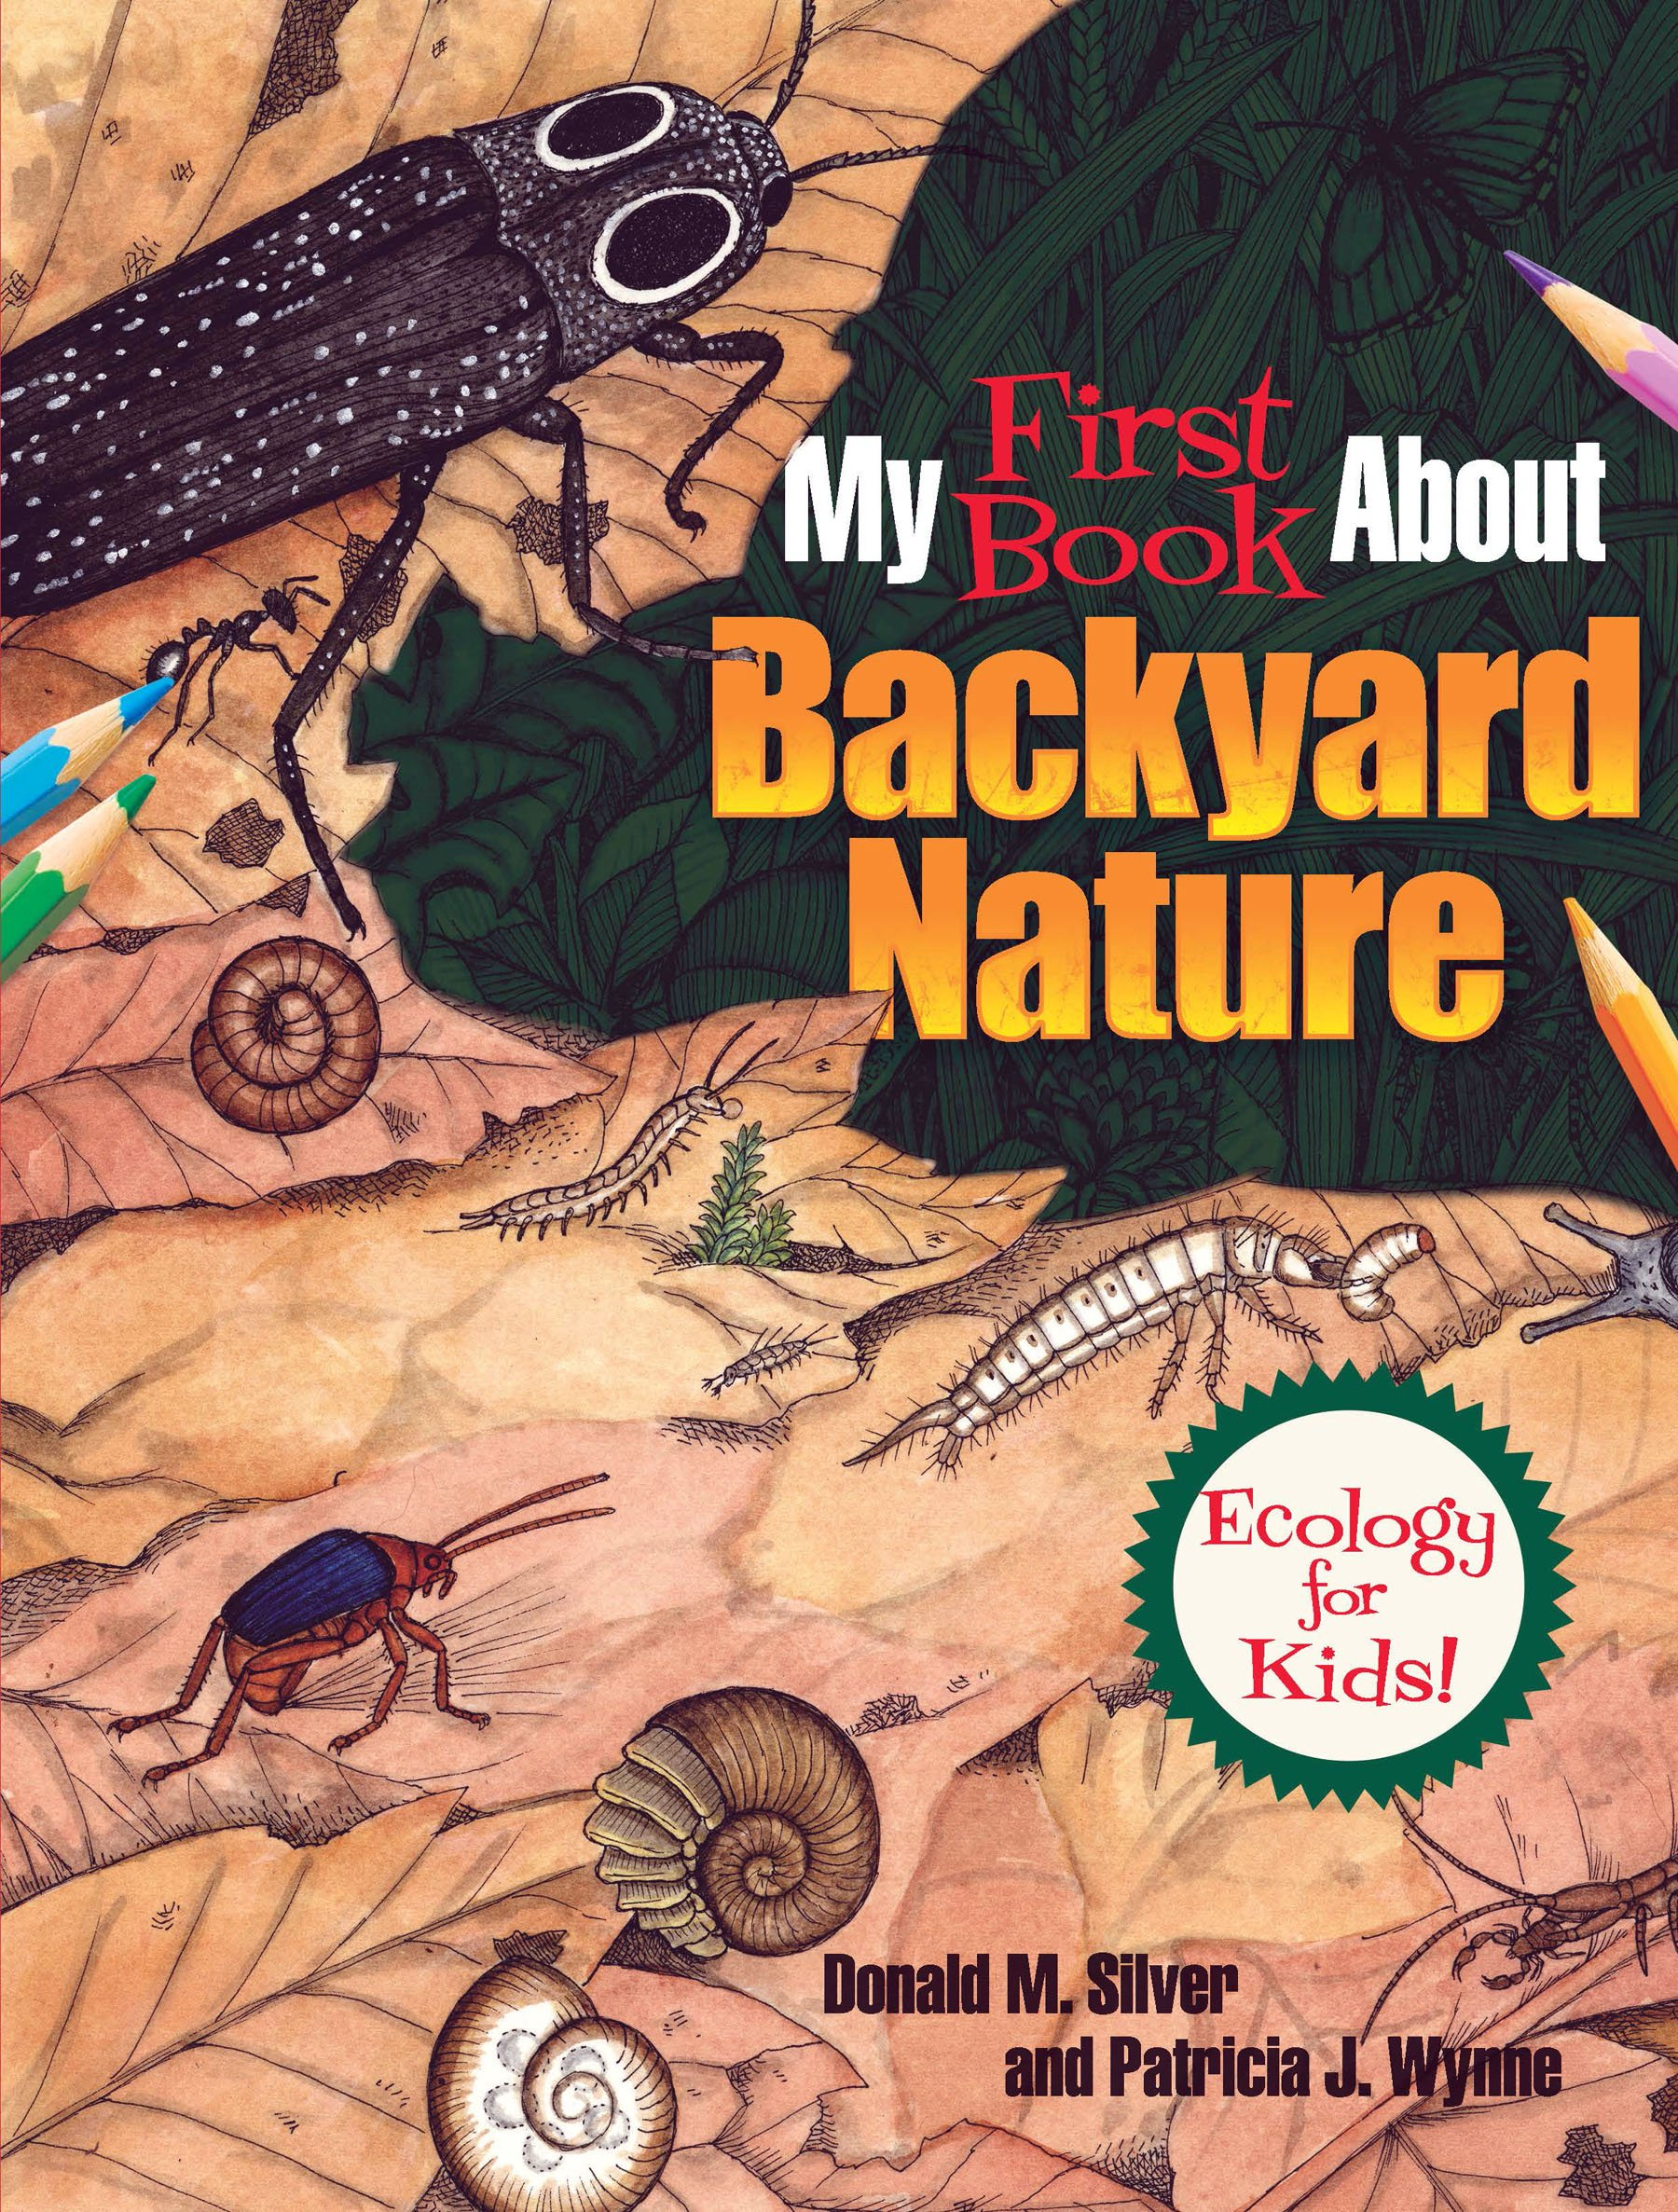 First Book About Backyard Nature product image